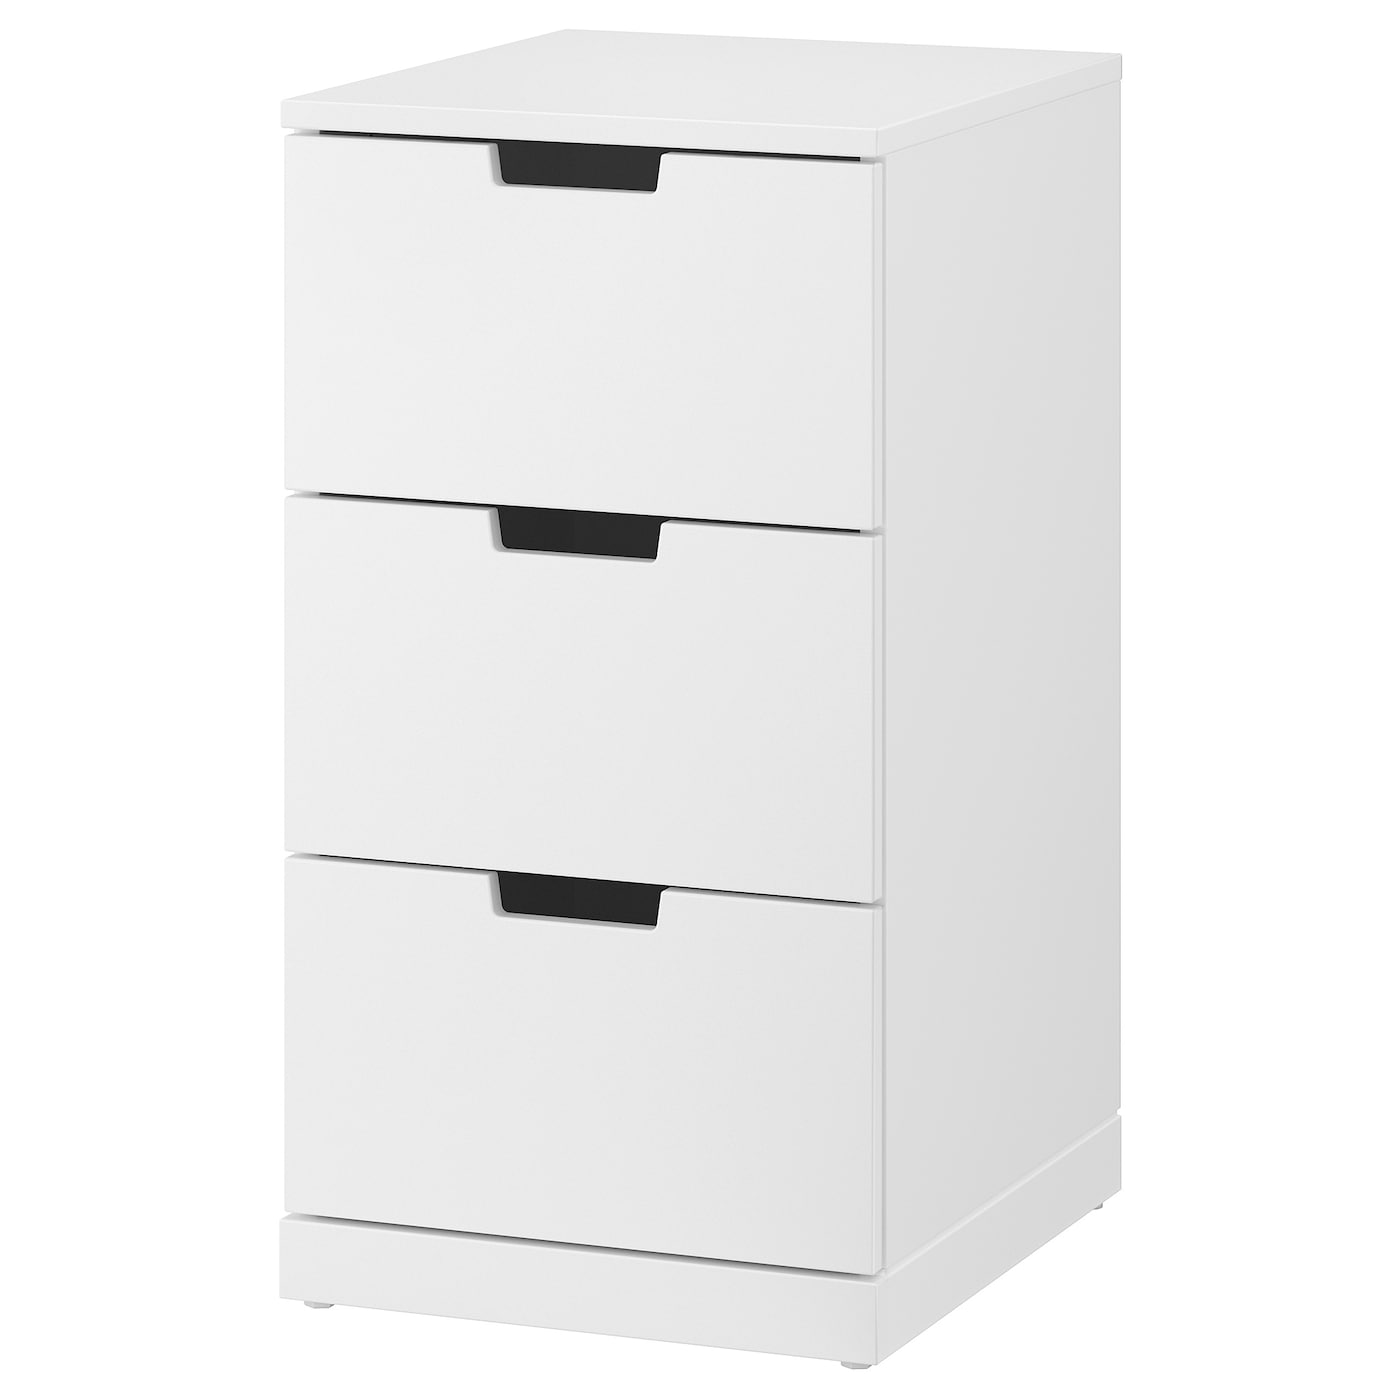 Nordli 3 Drawer Chest White 15 4x29